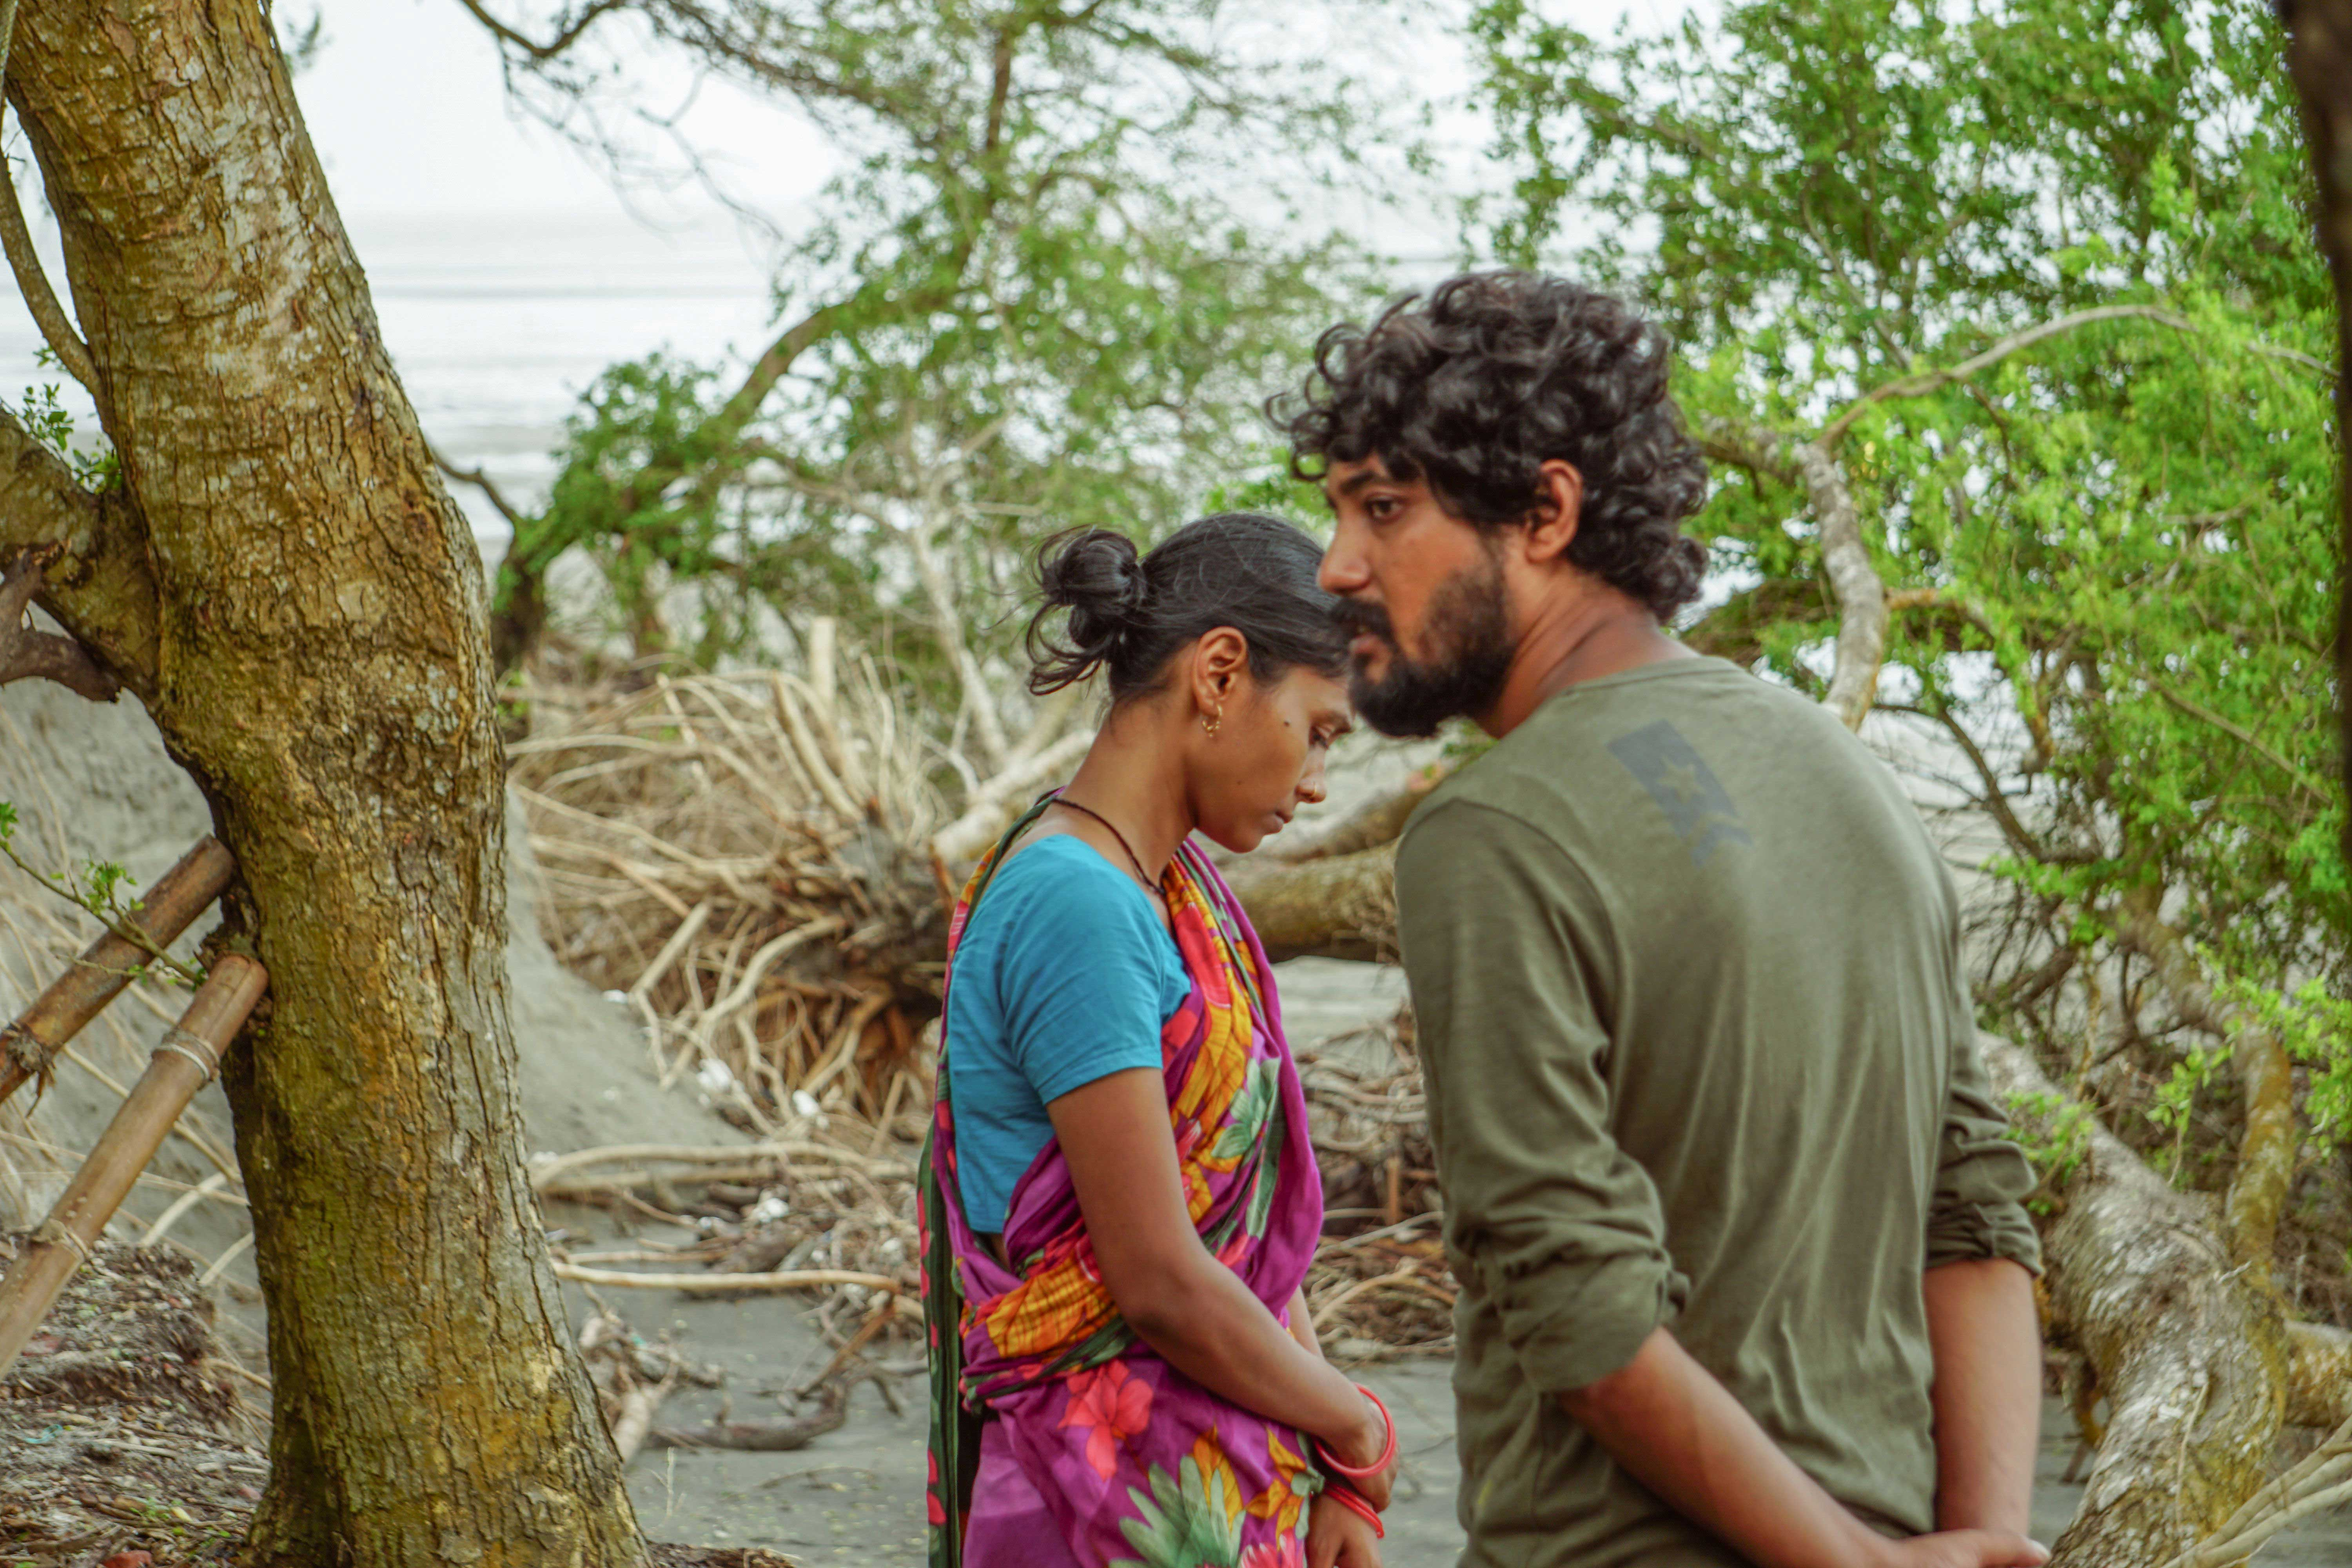 The Salt in Our Waters recensione film di Rezwan Shahriar Sumit